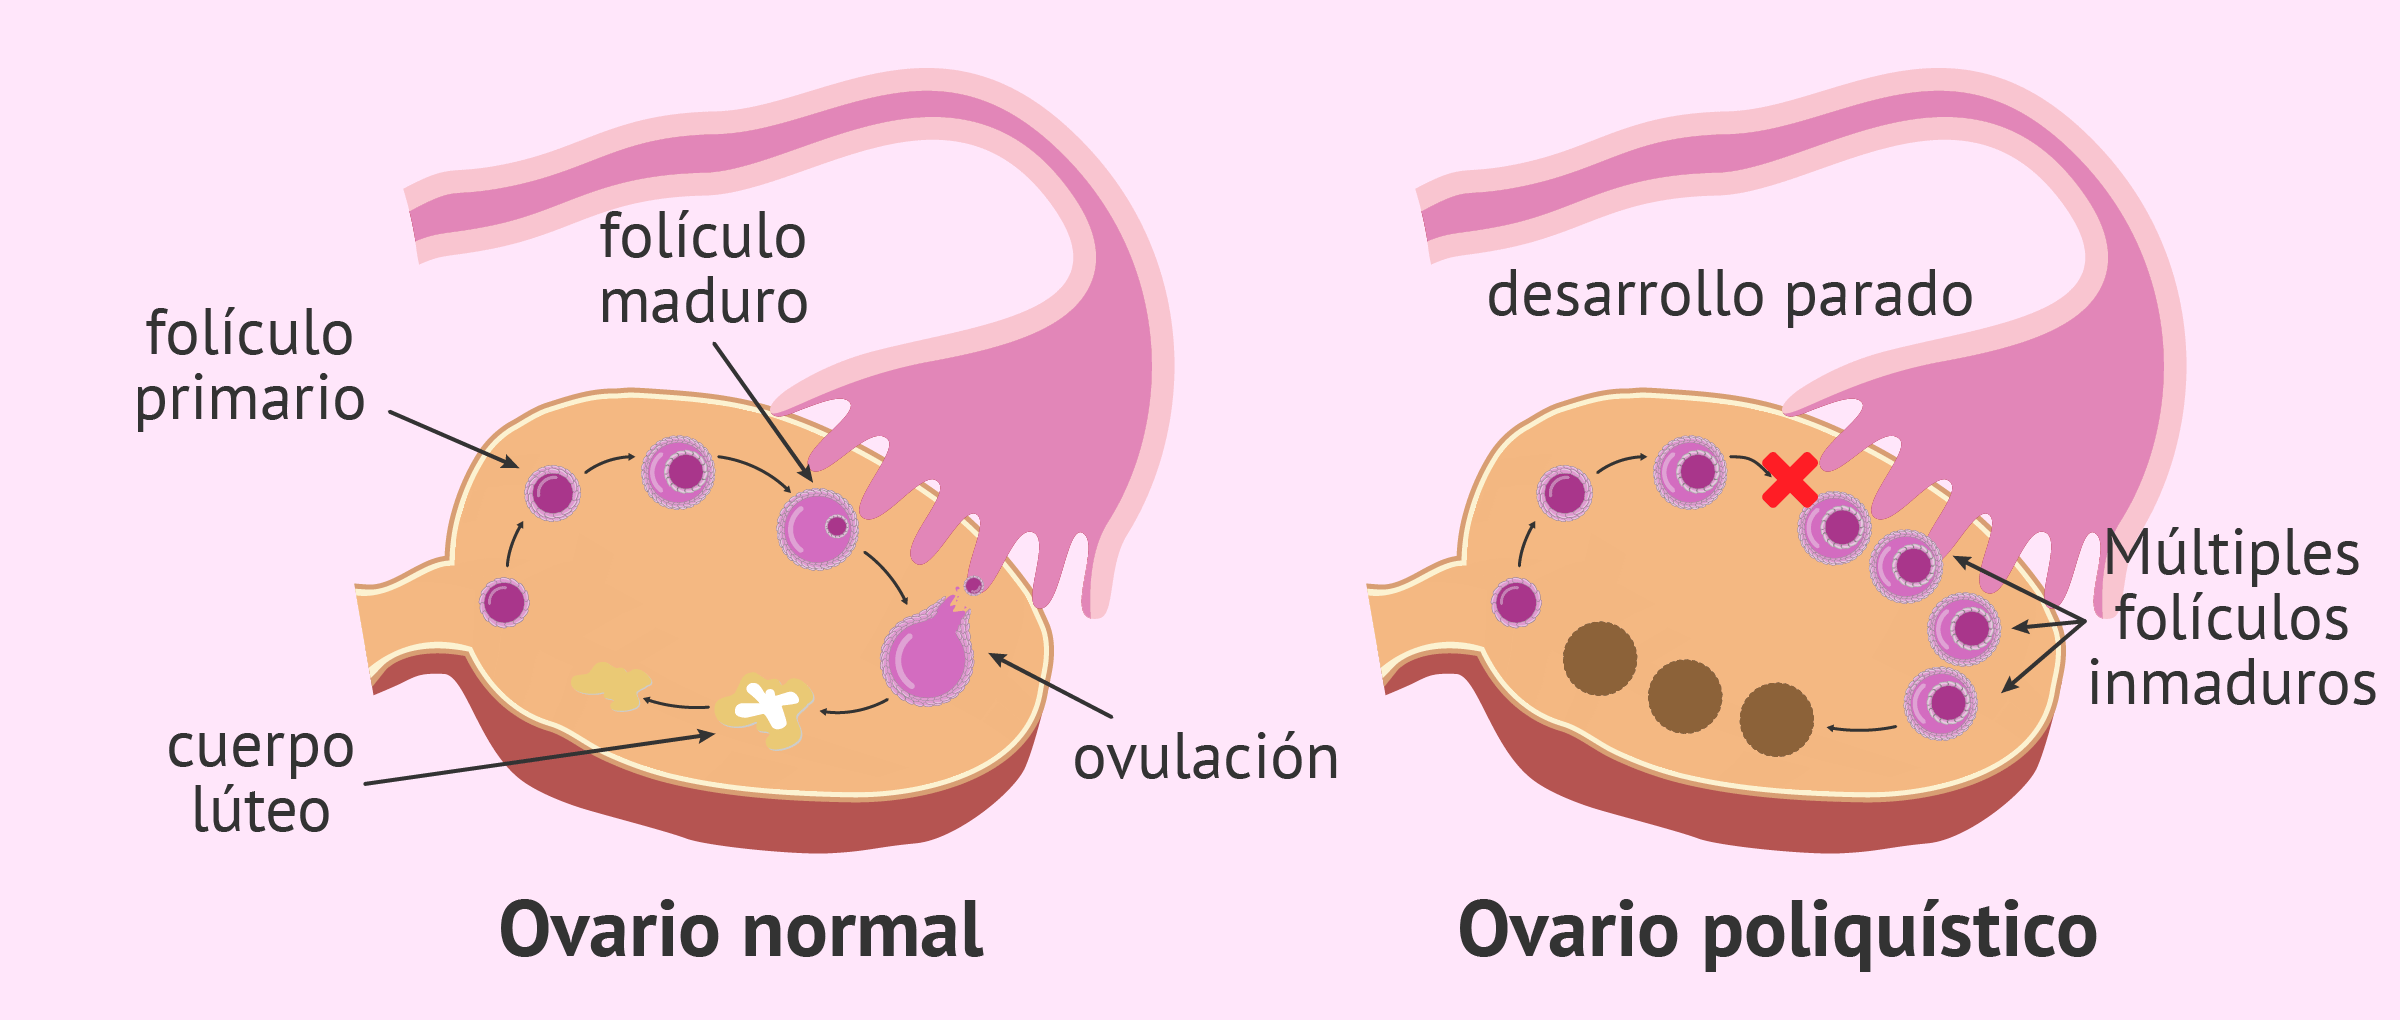 Ovario normal vs. ovario poliquístico